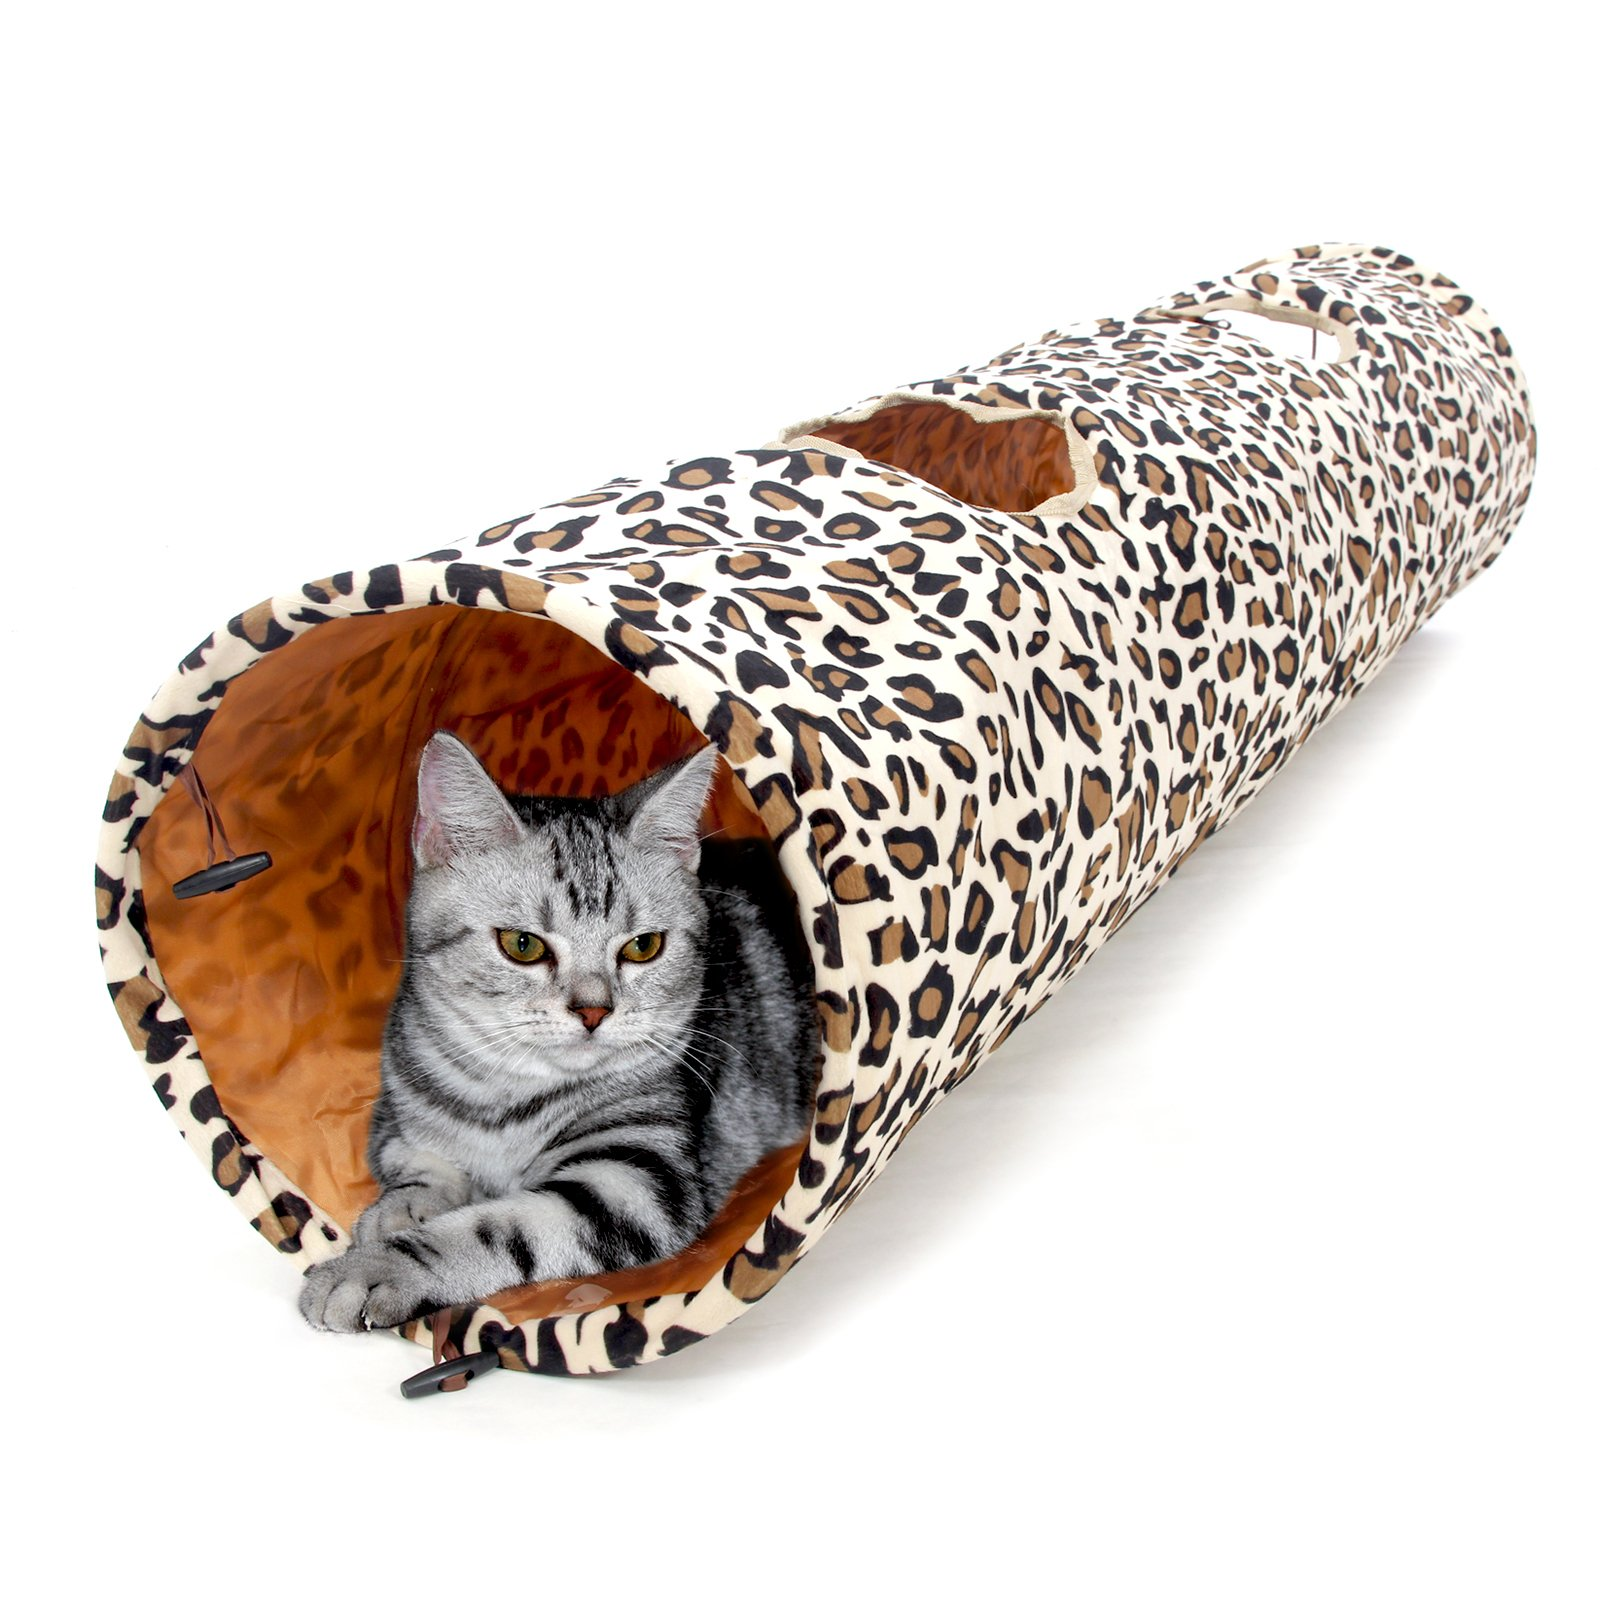 PAWZ Road Cat Toys Collapsible Tunnel Dog Tube for Fat Cat,Rabbits,Dogs Length 51'' Diameter 12'' by PAWZ Road